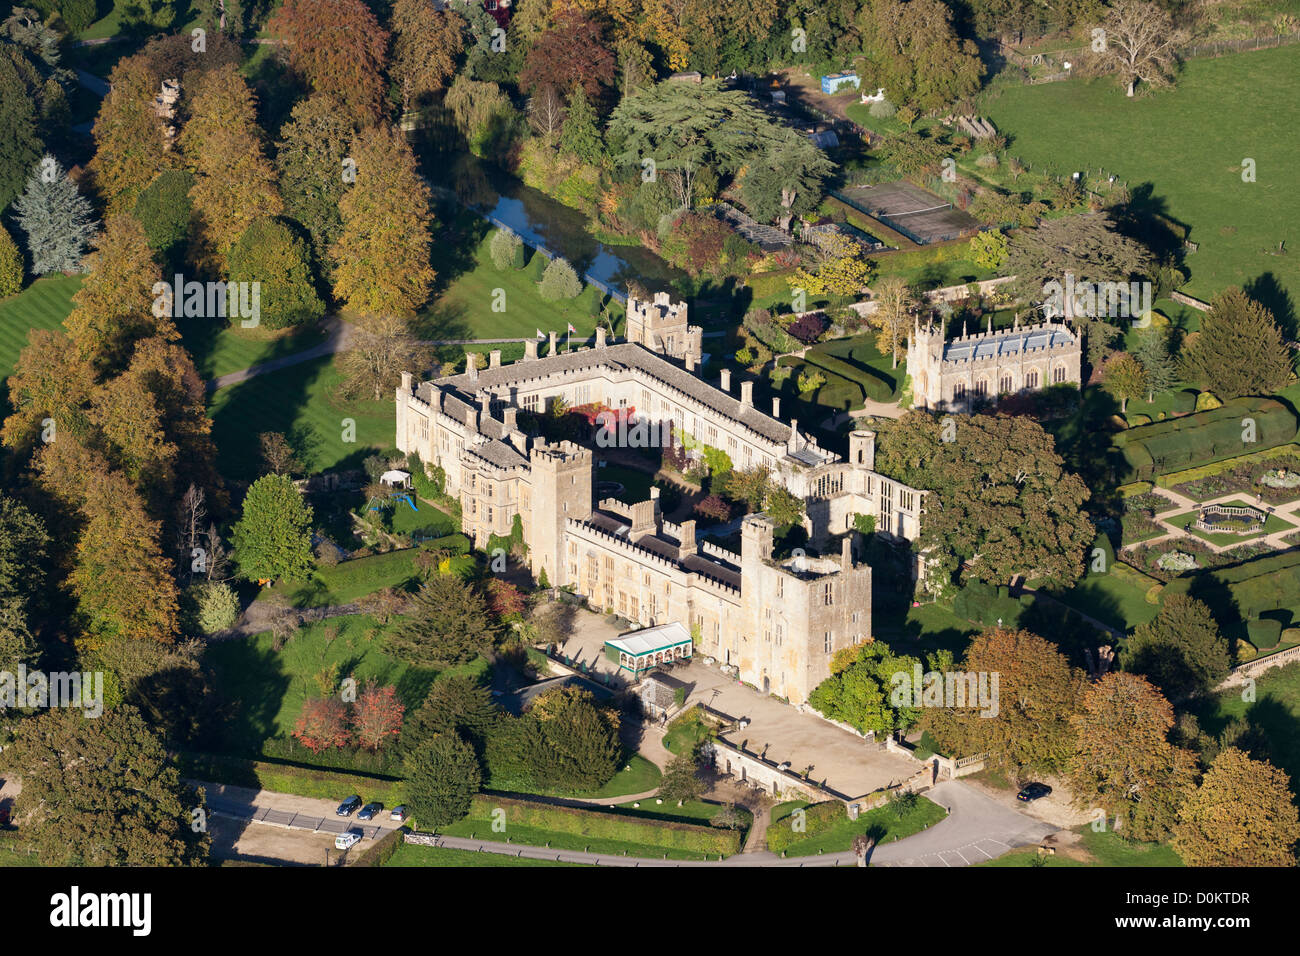 An aerial view of Sudeley Castle near the Cotswold town of Winchcombe, Gloucestershire, UK - Stock Image